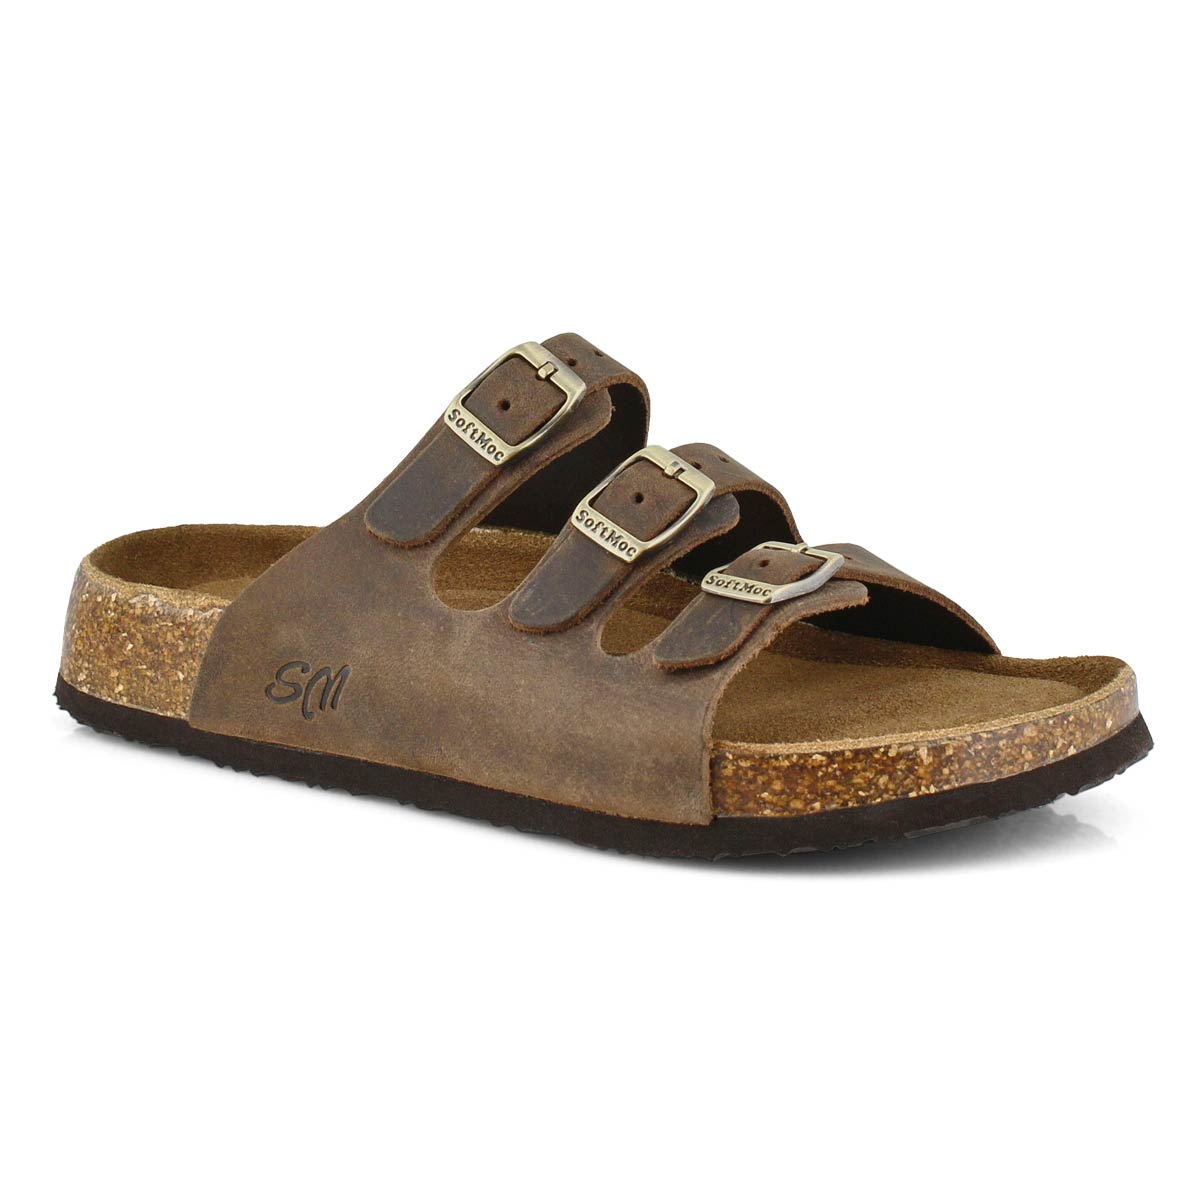 Women's ALEXIS 5 brown memory foam sandals